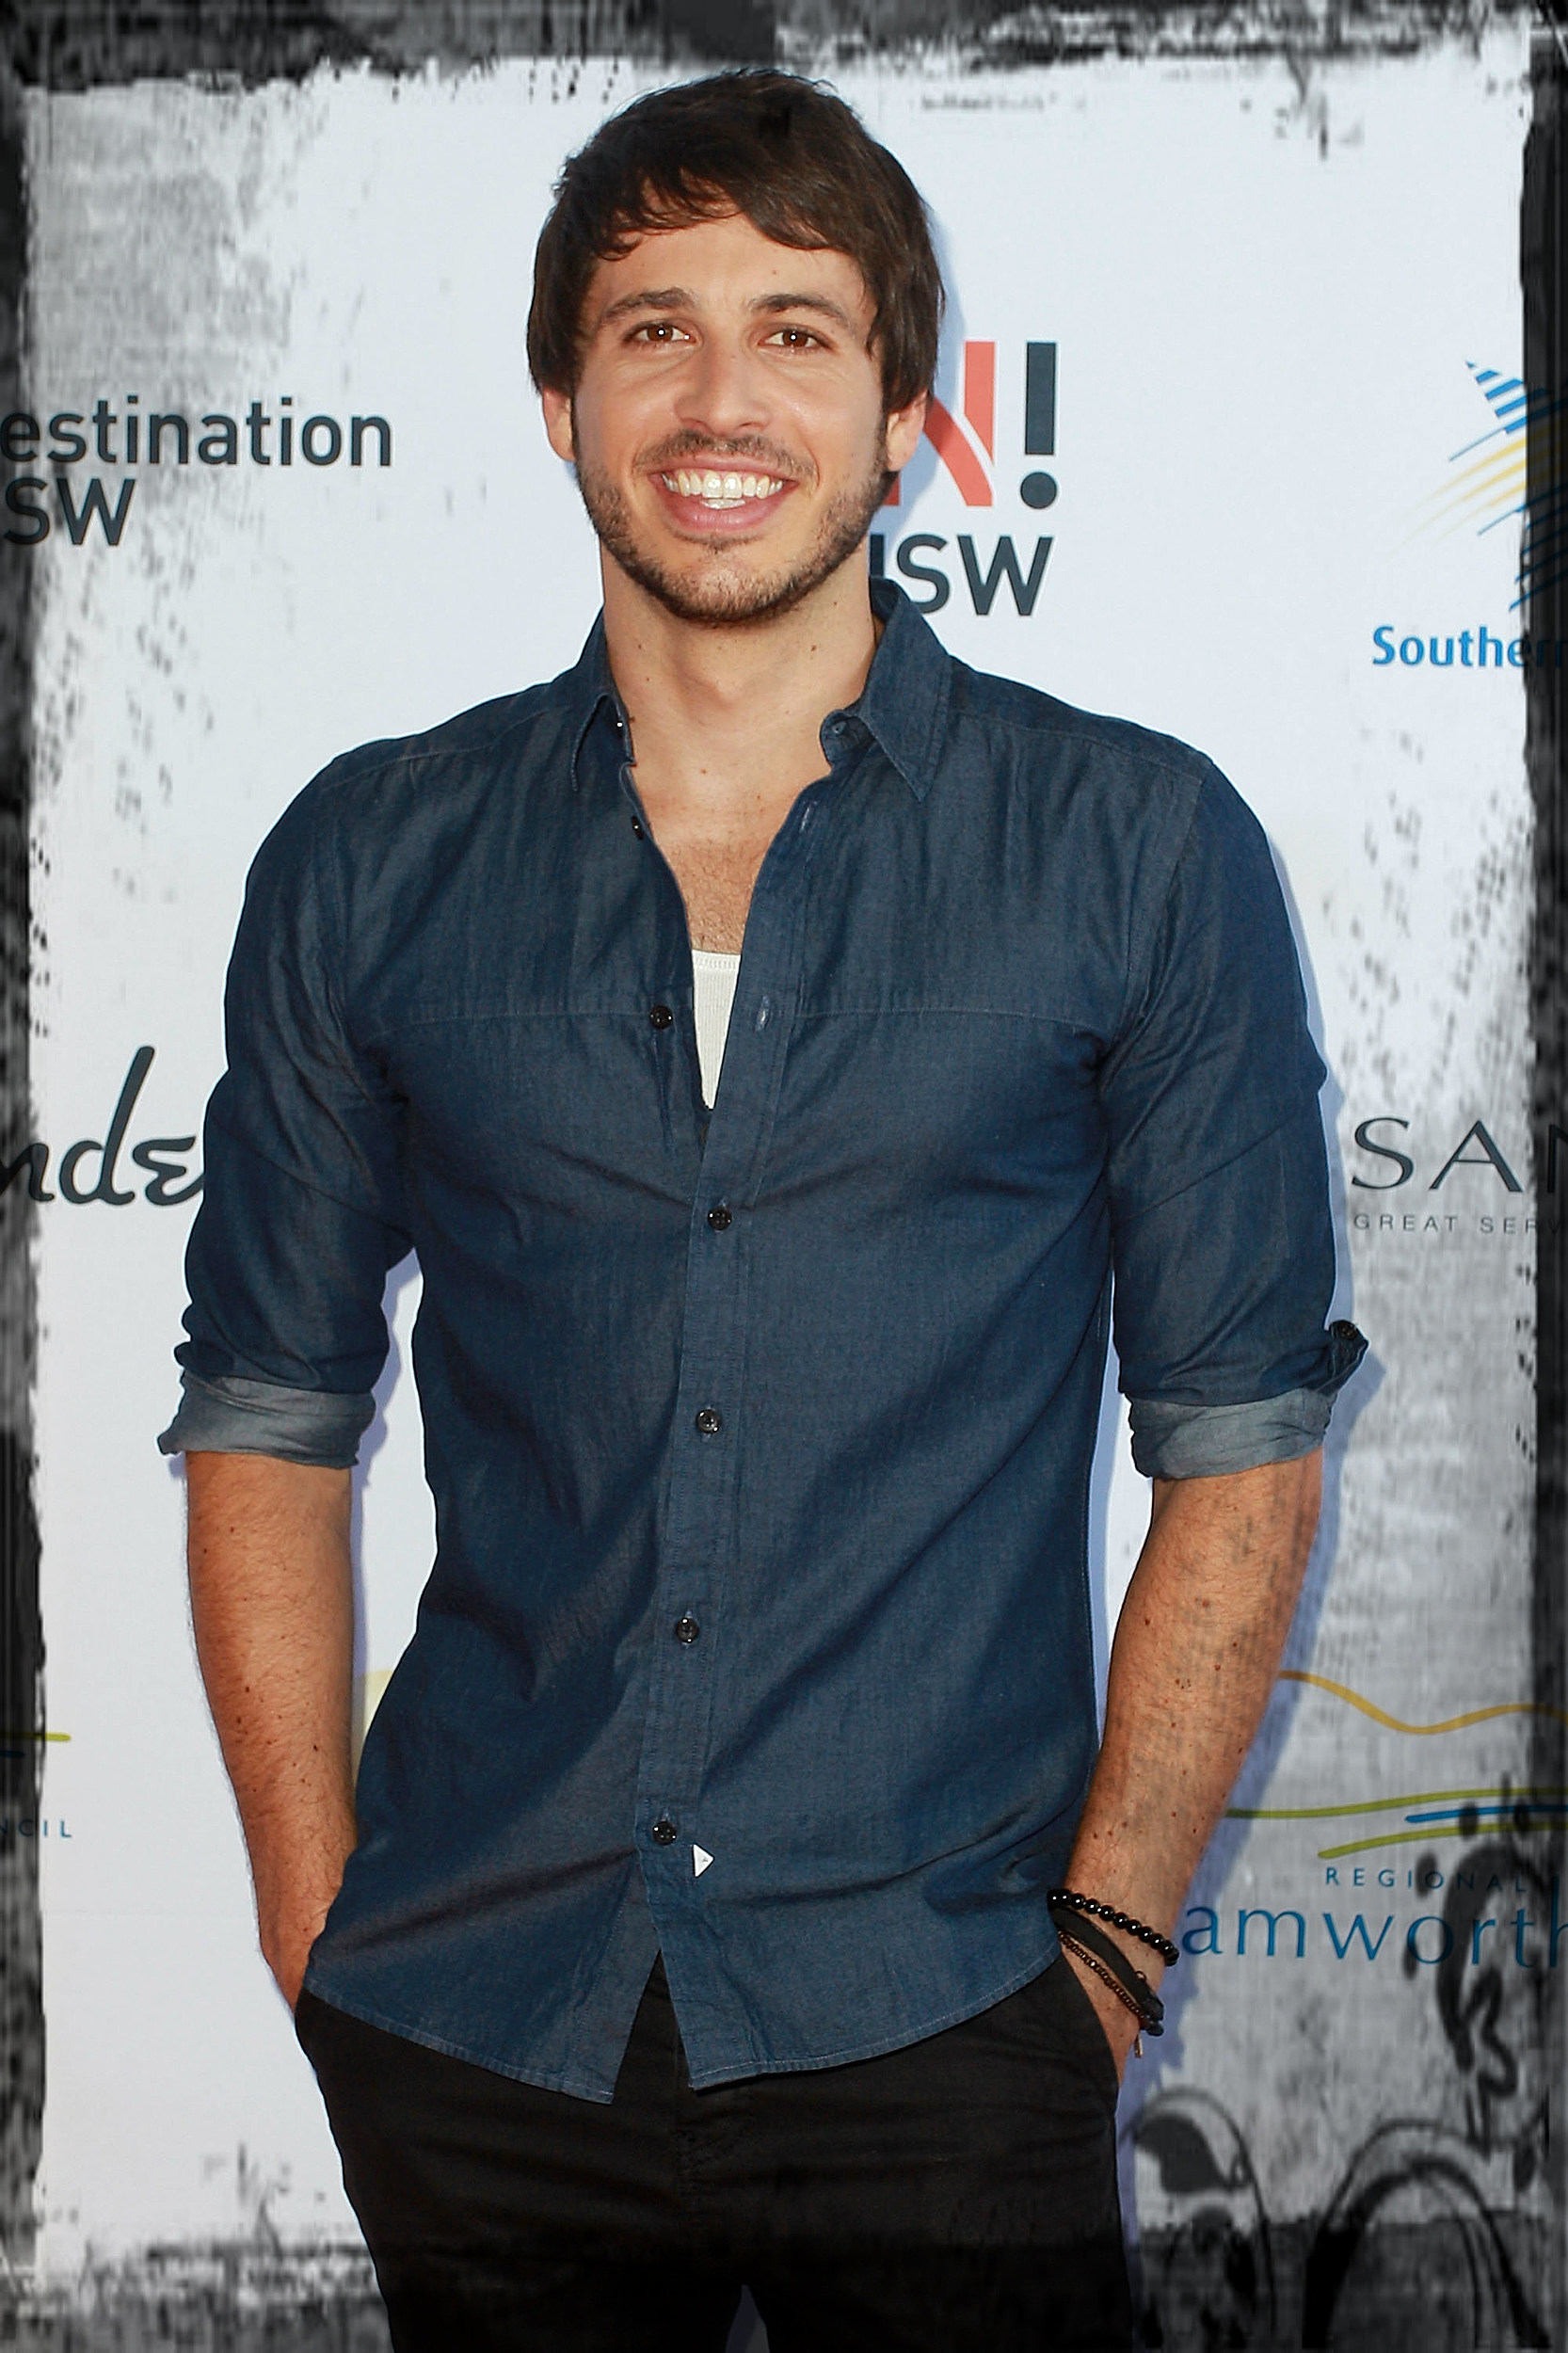 43rd Country Music Awards of Australia - Arrivals